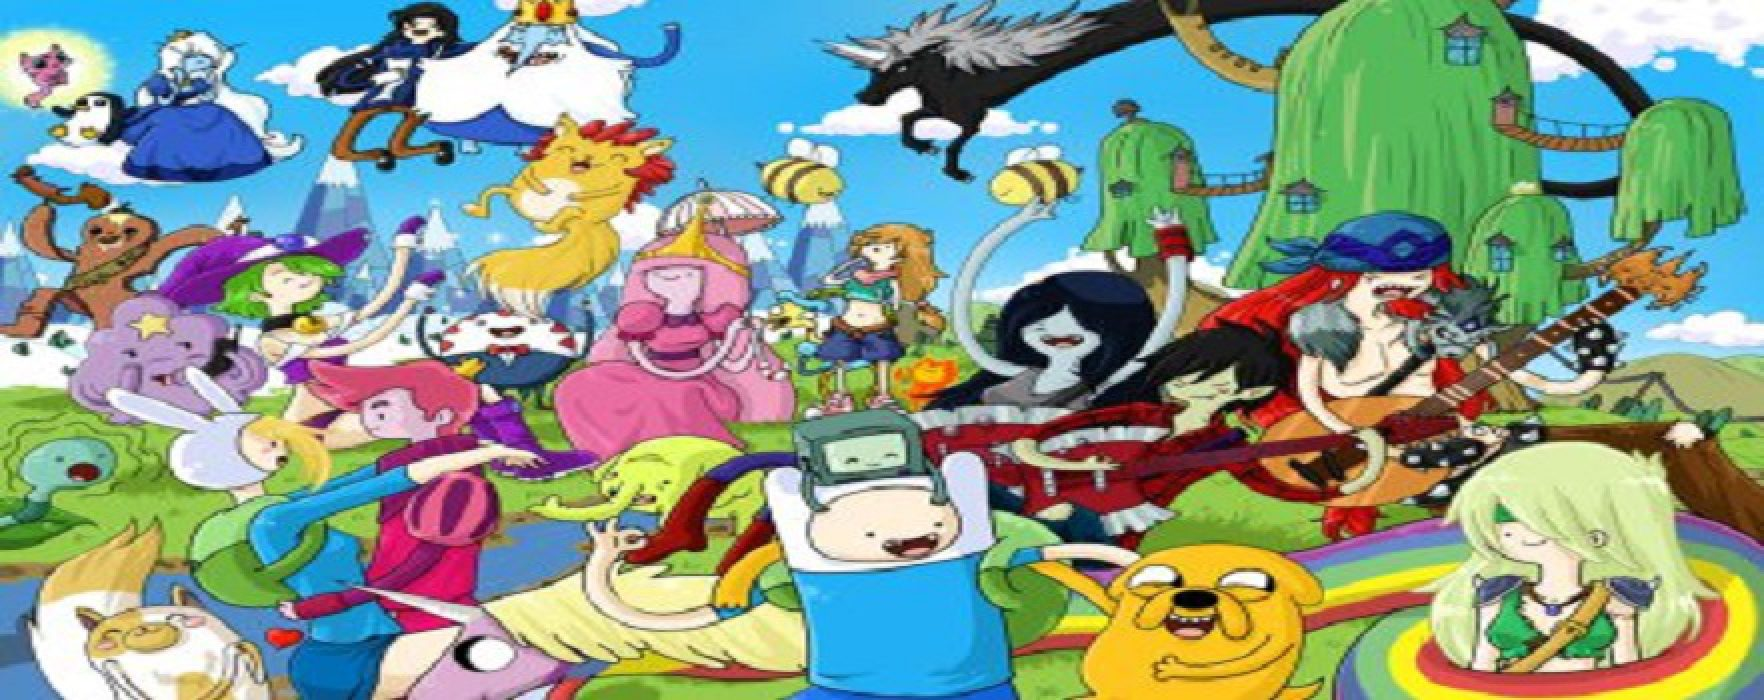 Adventure Time Ends After Ten Seasons